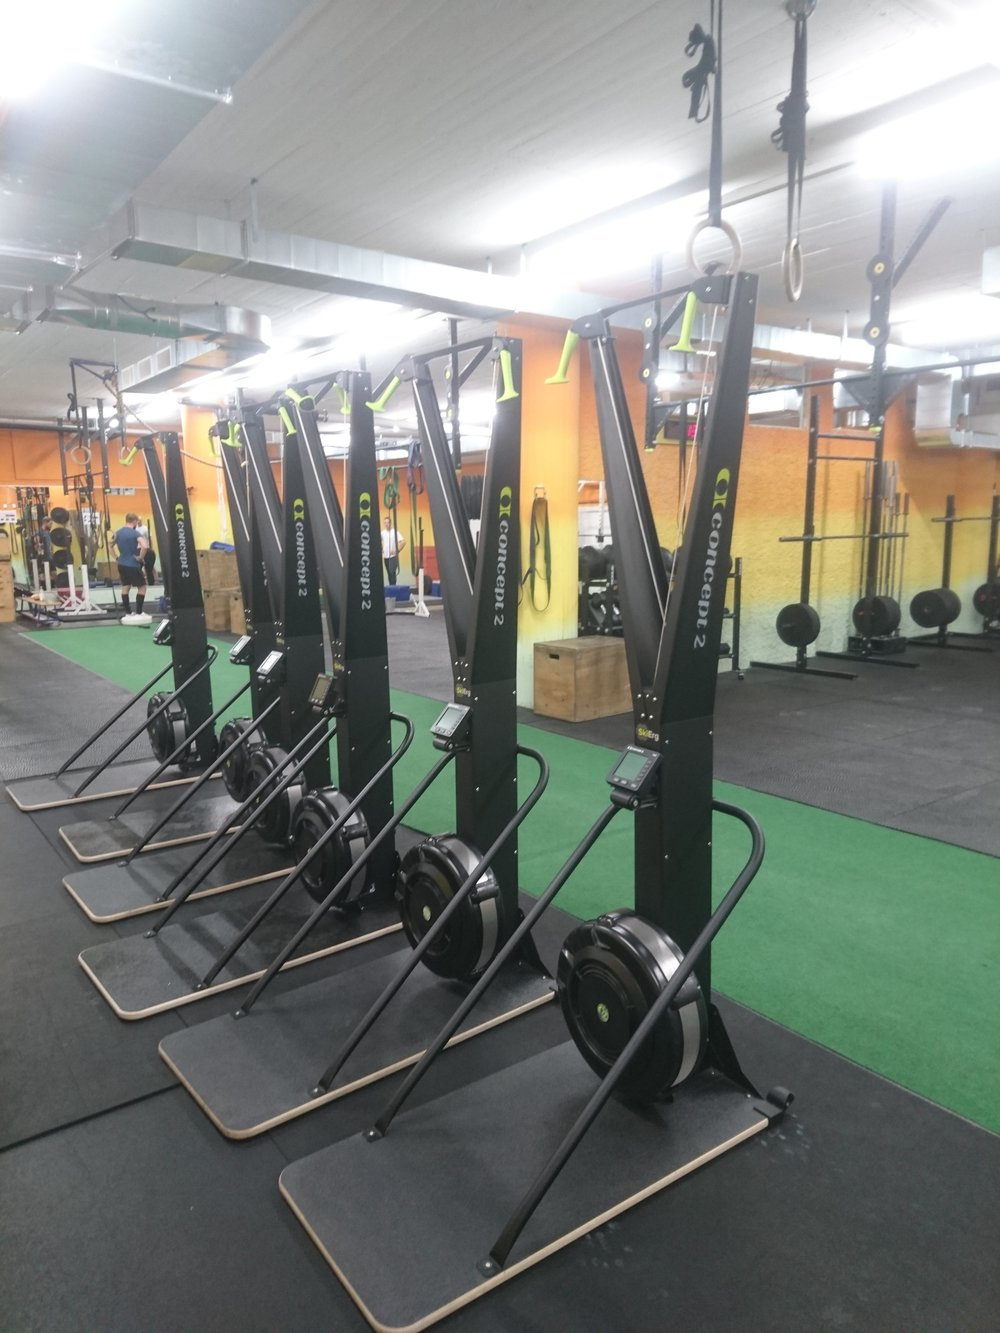 The Stage is set for today's 1k Ski erg Competition! Everyone can take part! between 7-9pm we will have some pro athletes competing including Games Athlete Lukas Esslinger and some of the fastest rowers of Switzerland